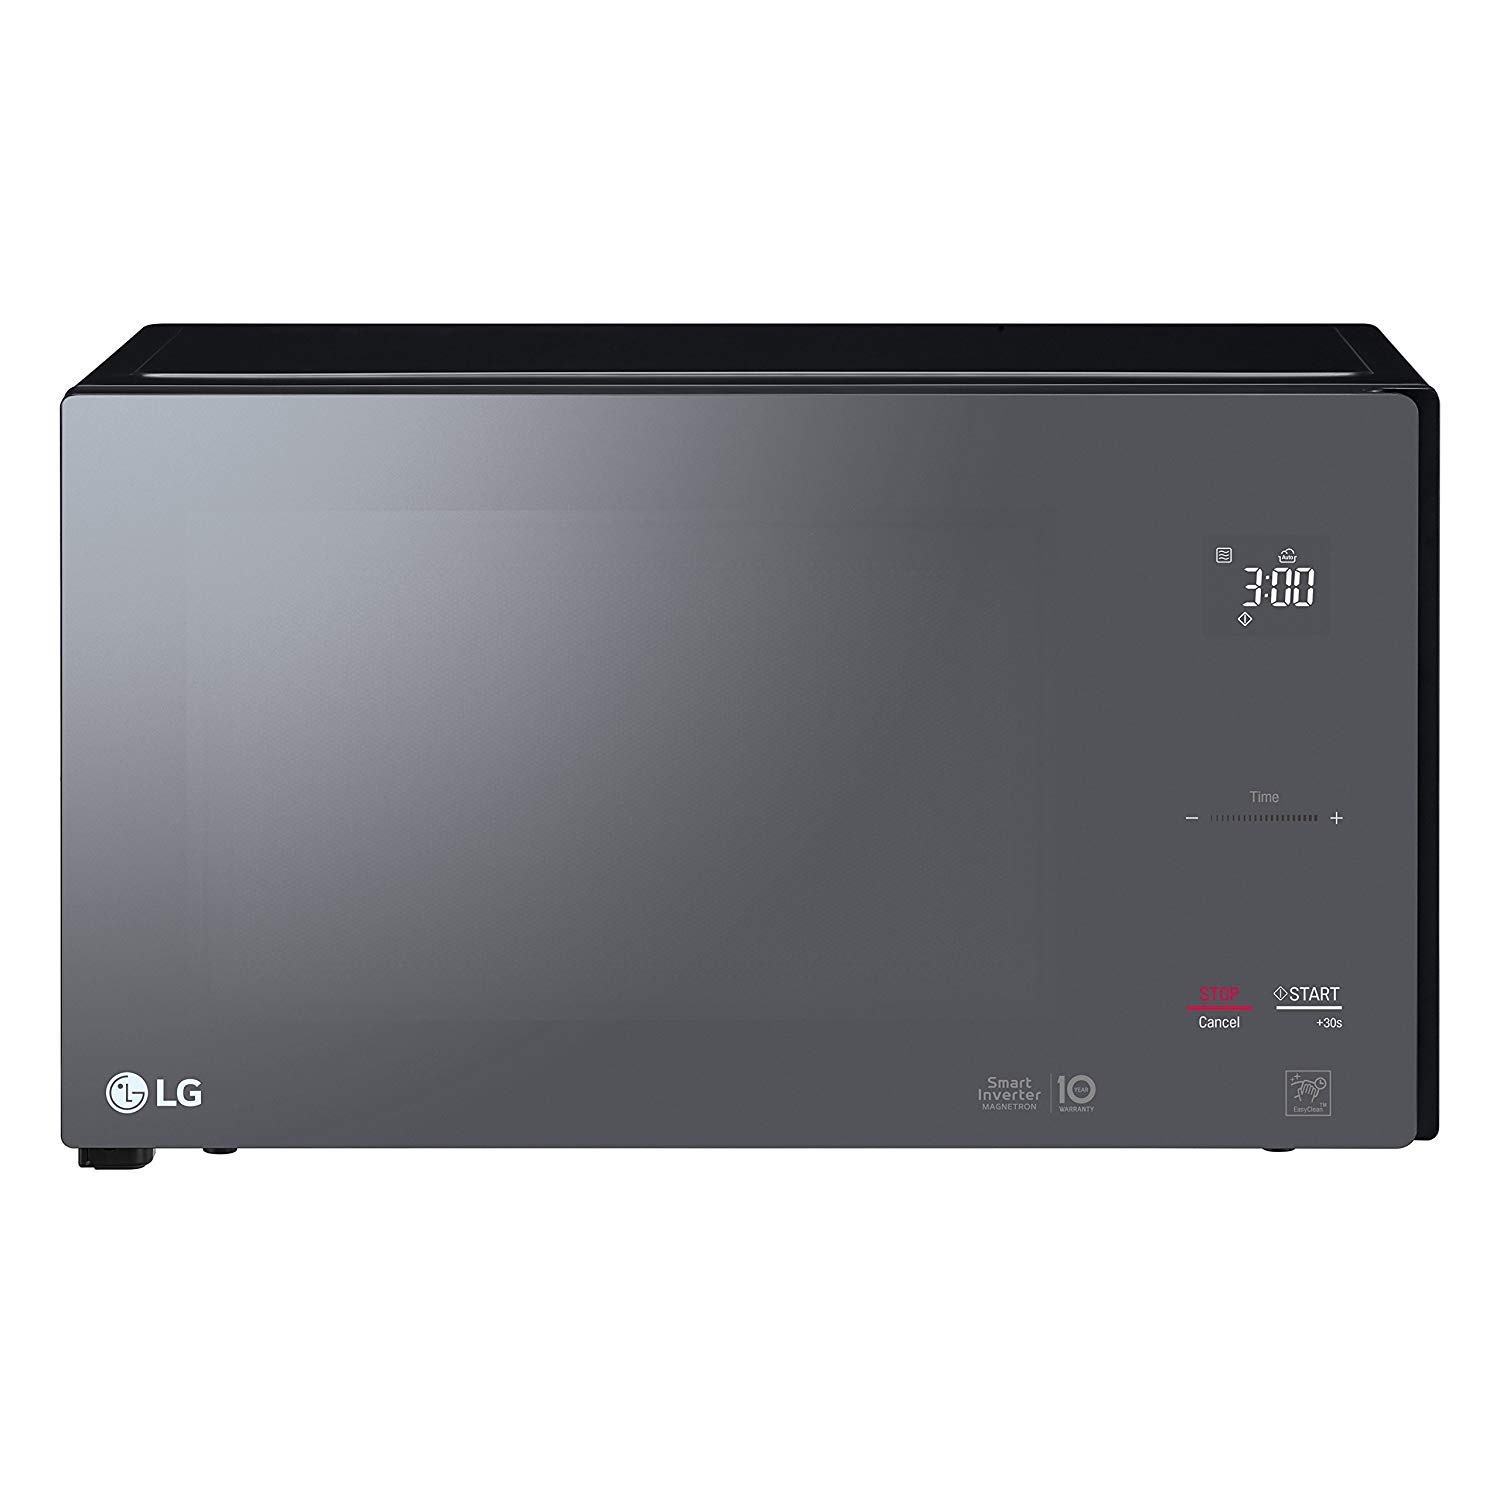 LG 42 L Solo Microwave Oven (MS4295DIS, Black, With Starter Kit